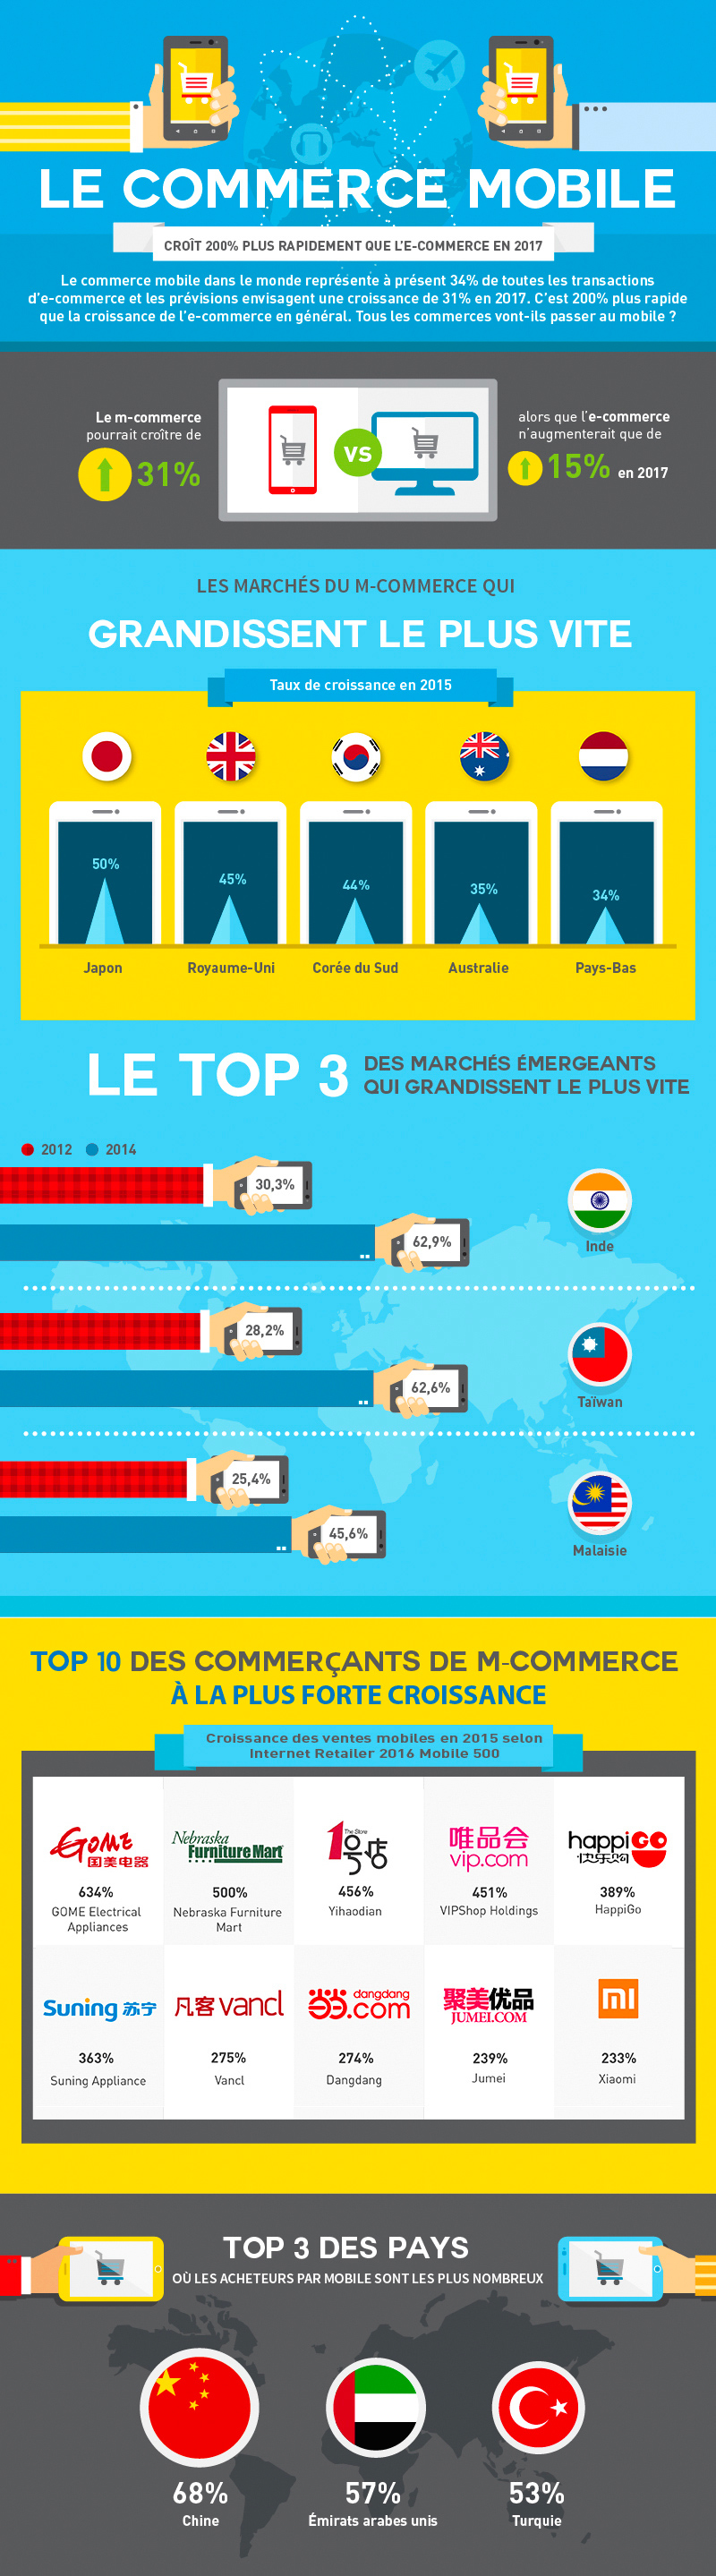 mcommerce-infographie-1